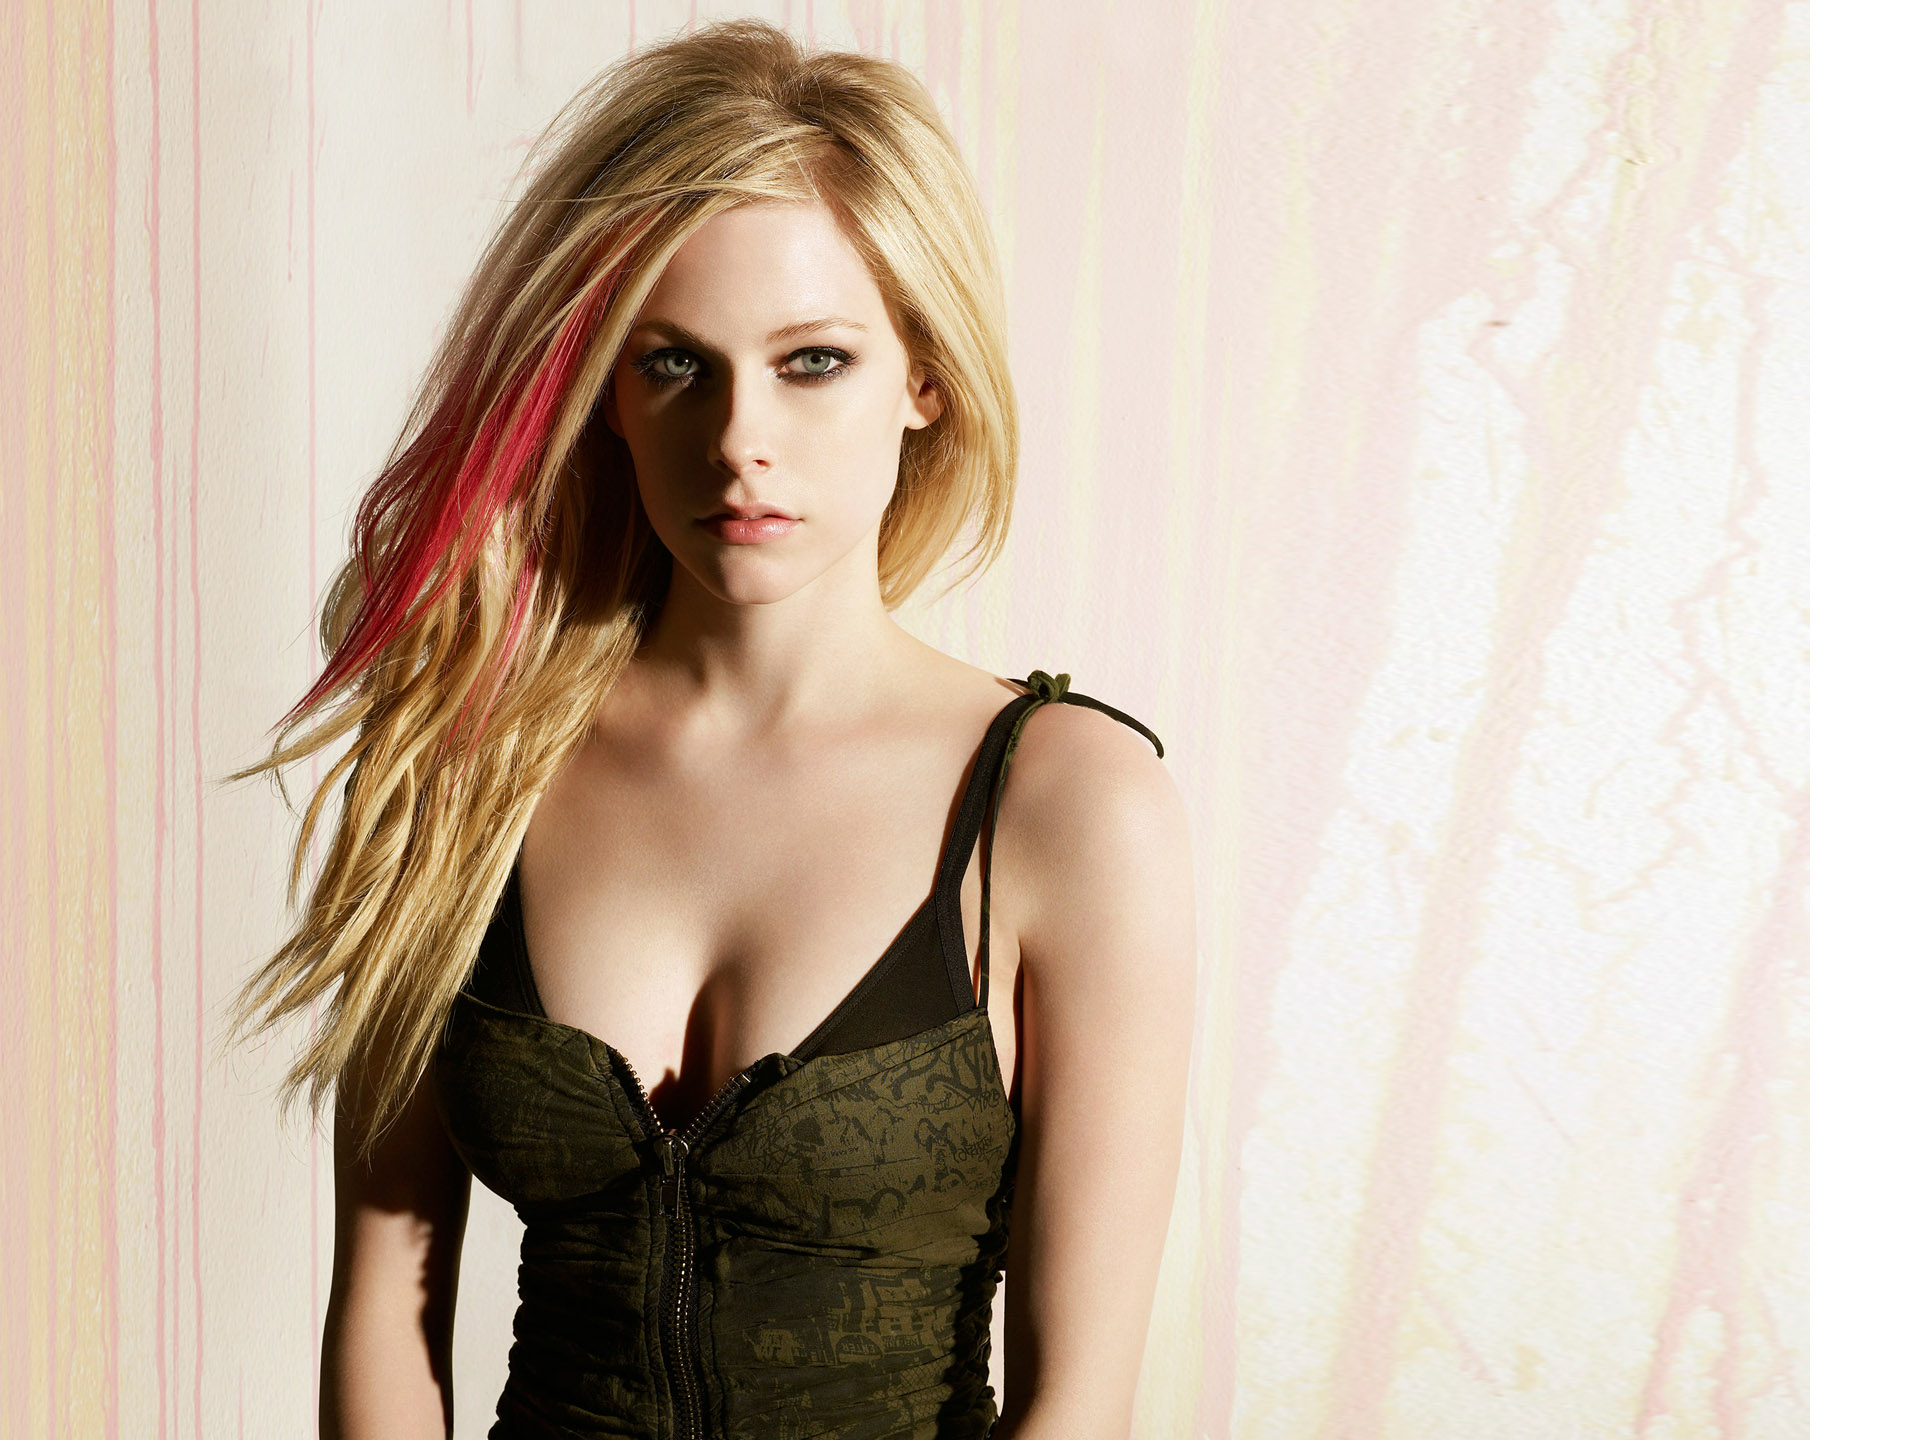 Avril Lavigne 511 218.59 Kb